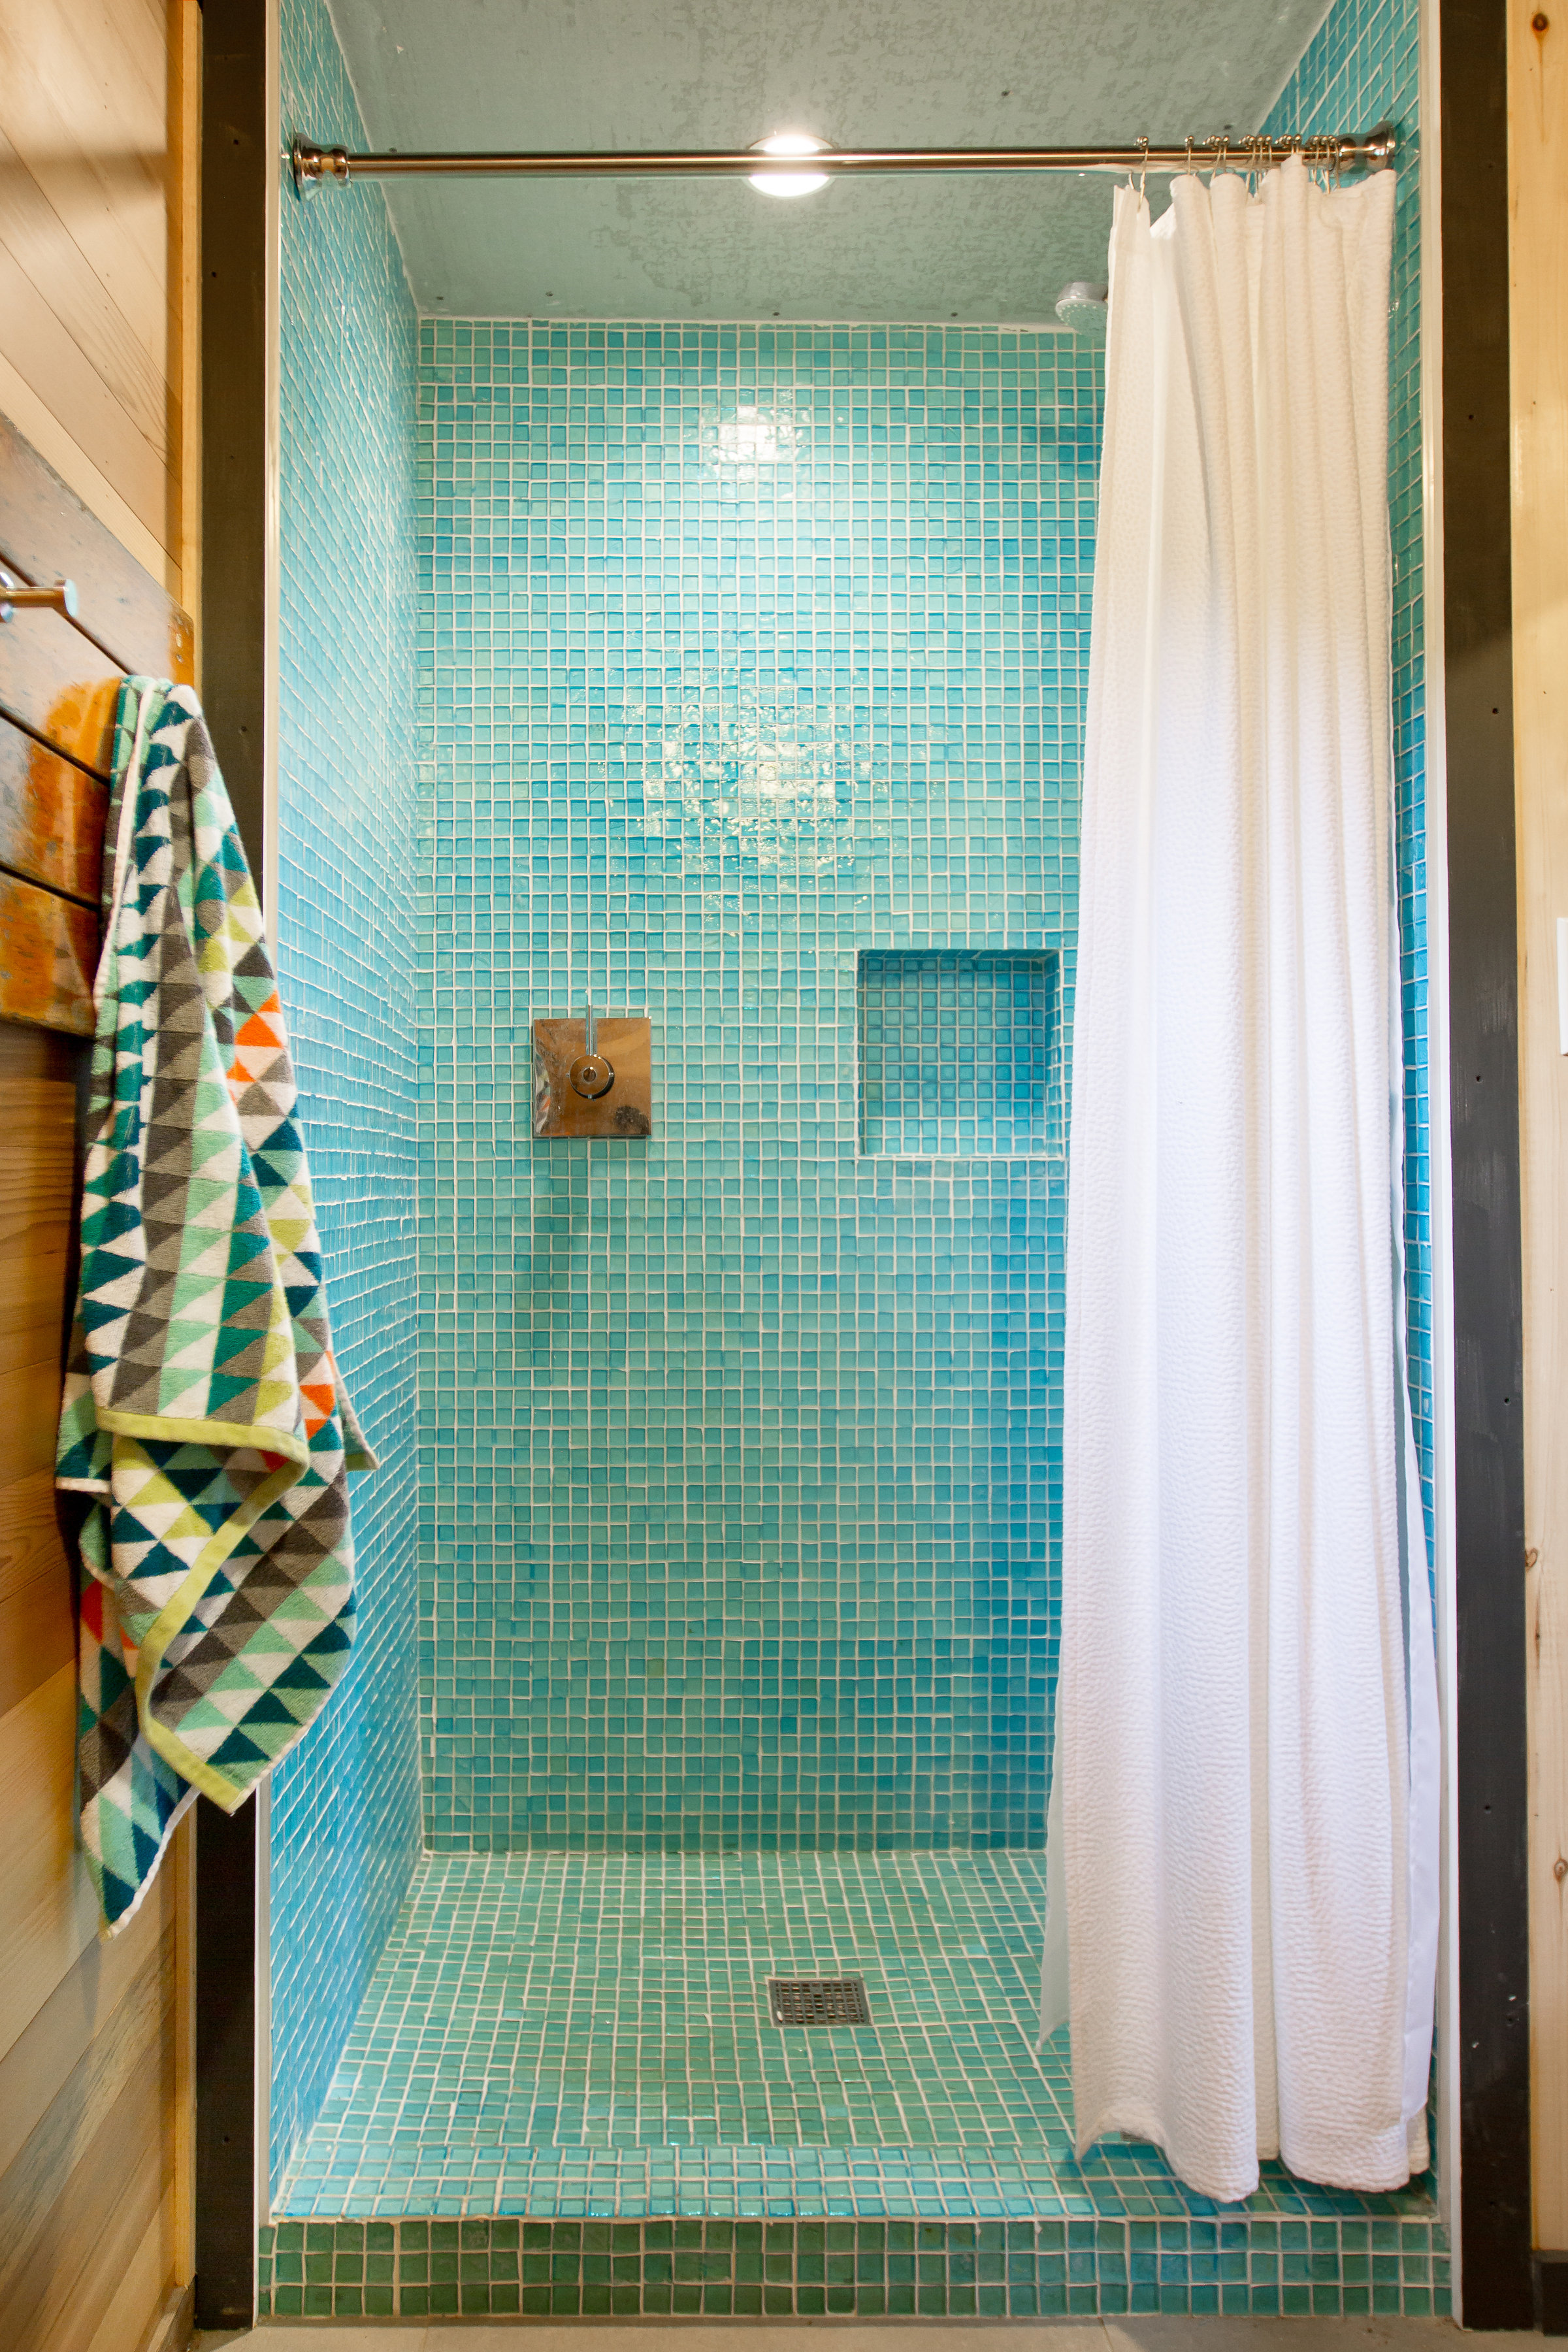 Aqua shower tile in mid-century modern boathouse designed by NewStudio Architecture